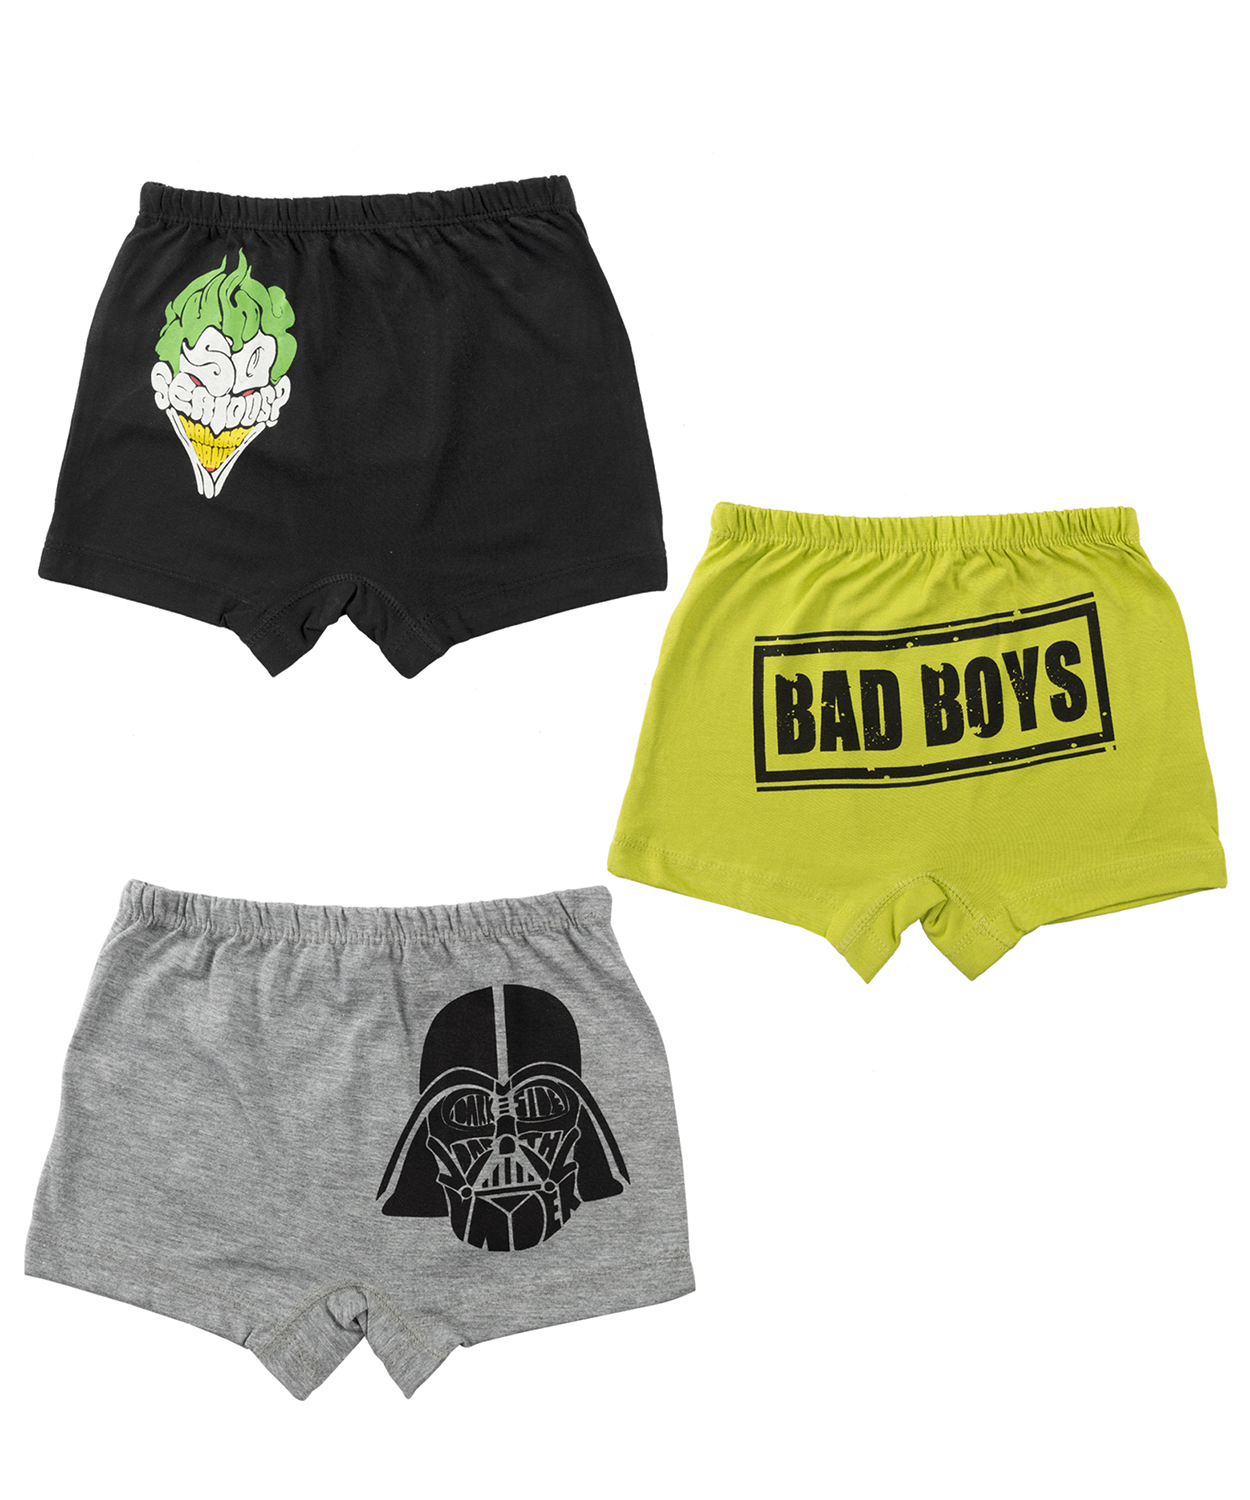 Boy's Shorts: Buy Shorts For Boys at low Prices in India